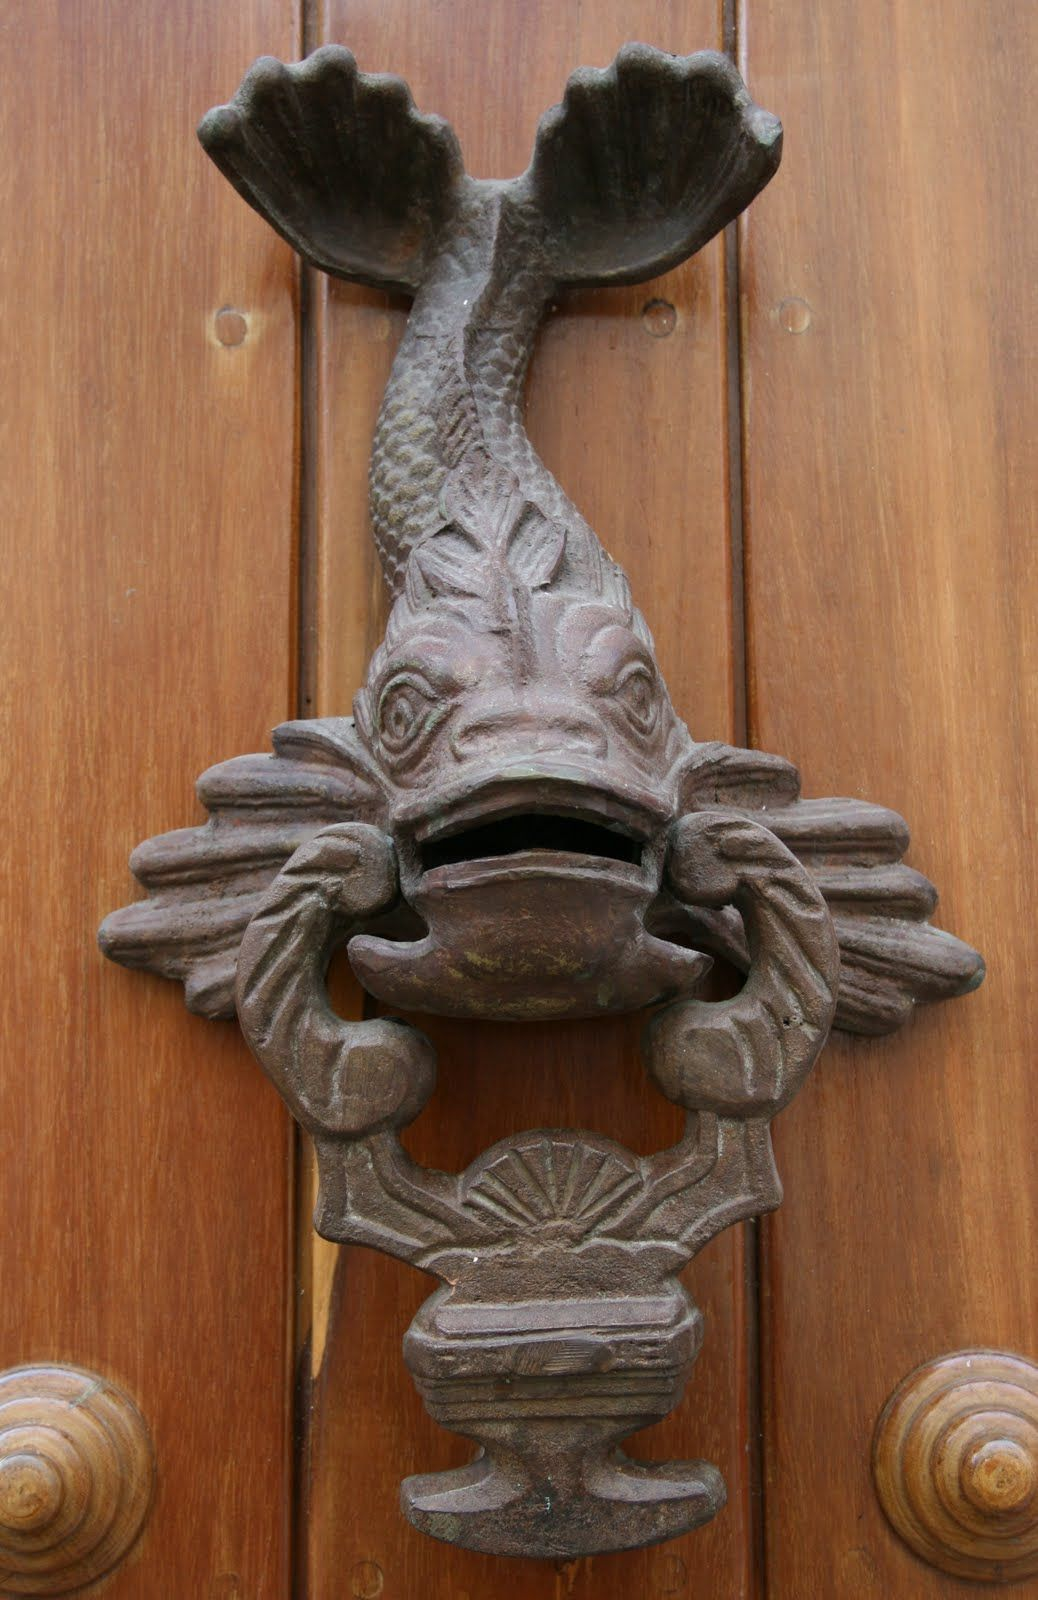 Pin by juliewoodruff on door knobs and knockers | Pinterest | Koi ...